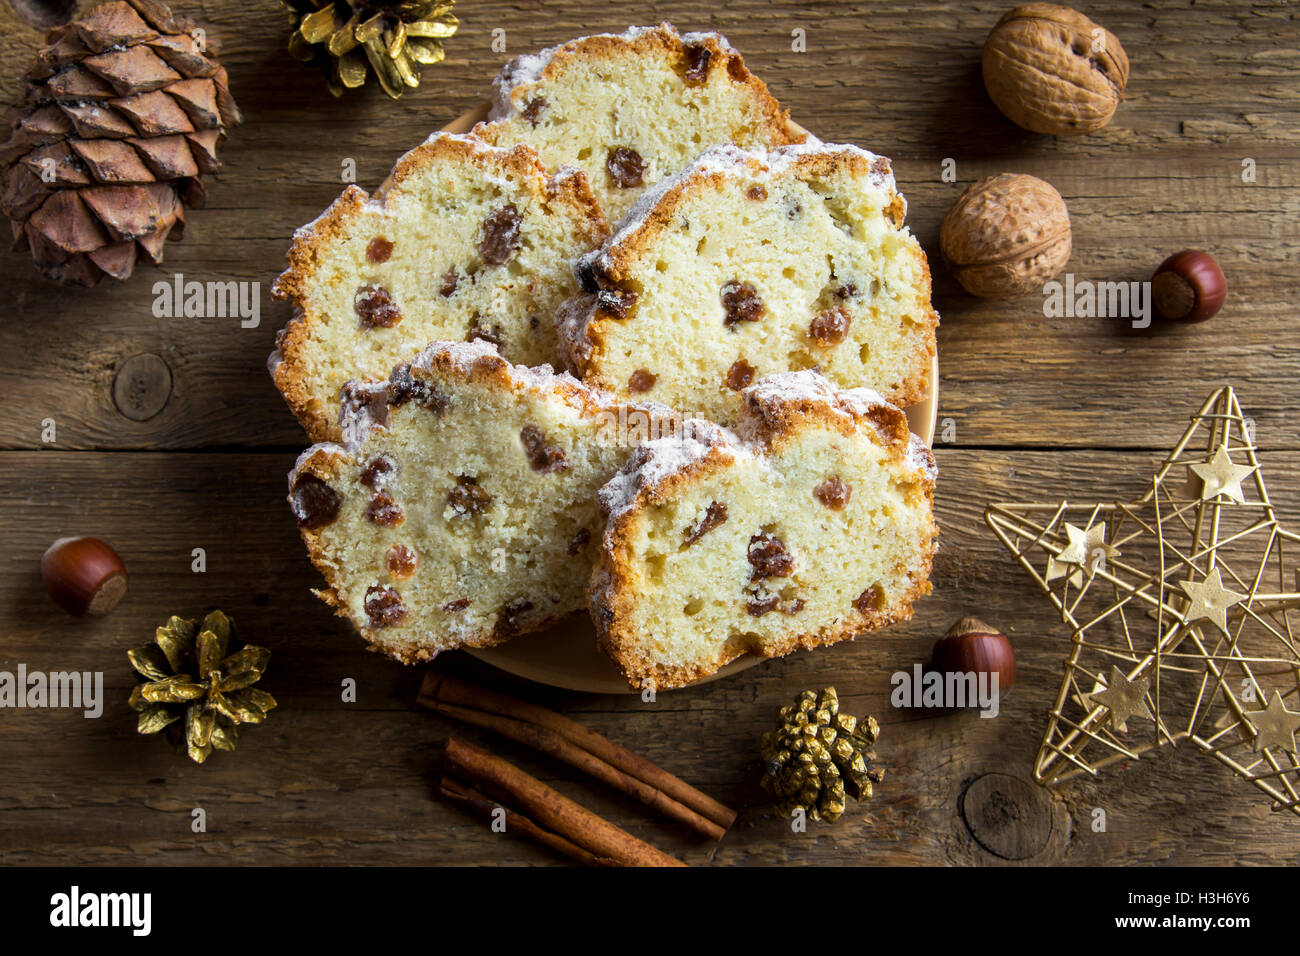 Christmas festive fruit bread (cake) on rustic wooden board - homemade Christmas bakery - Stock Image